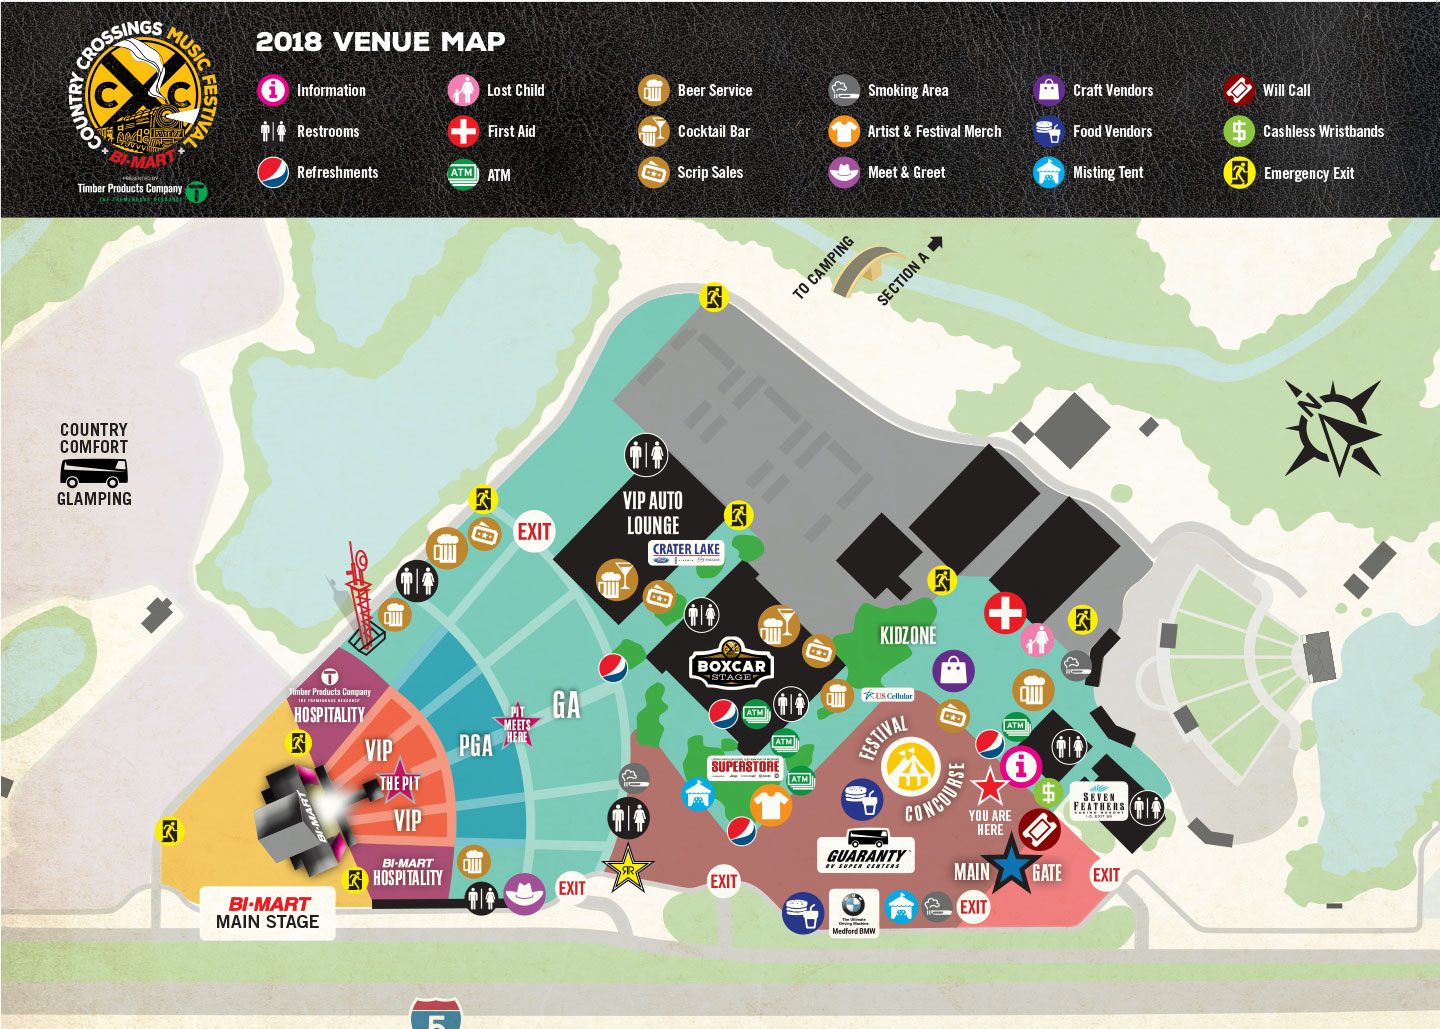 Event site map designed for attendees